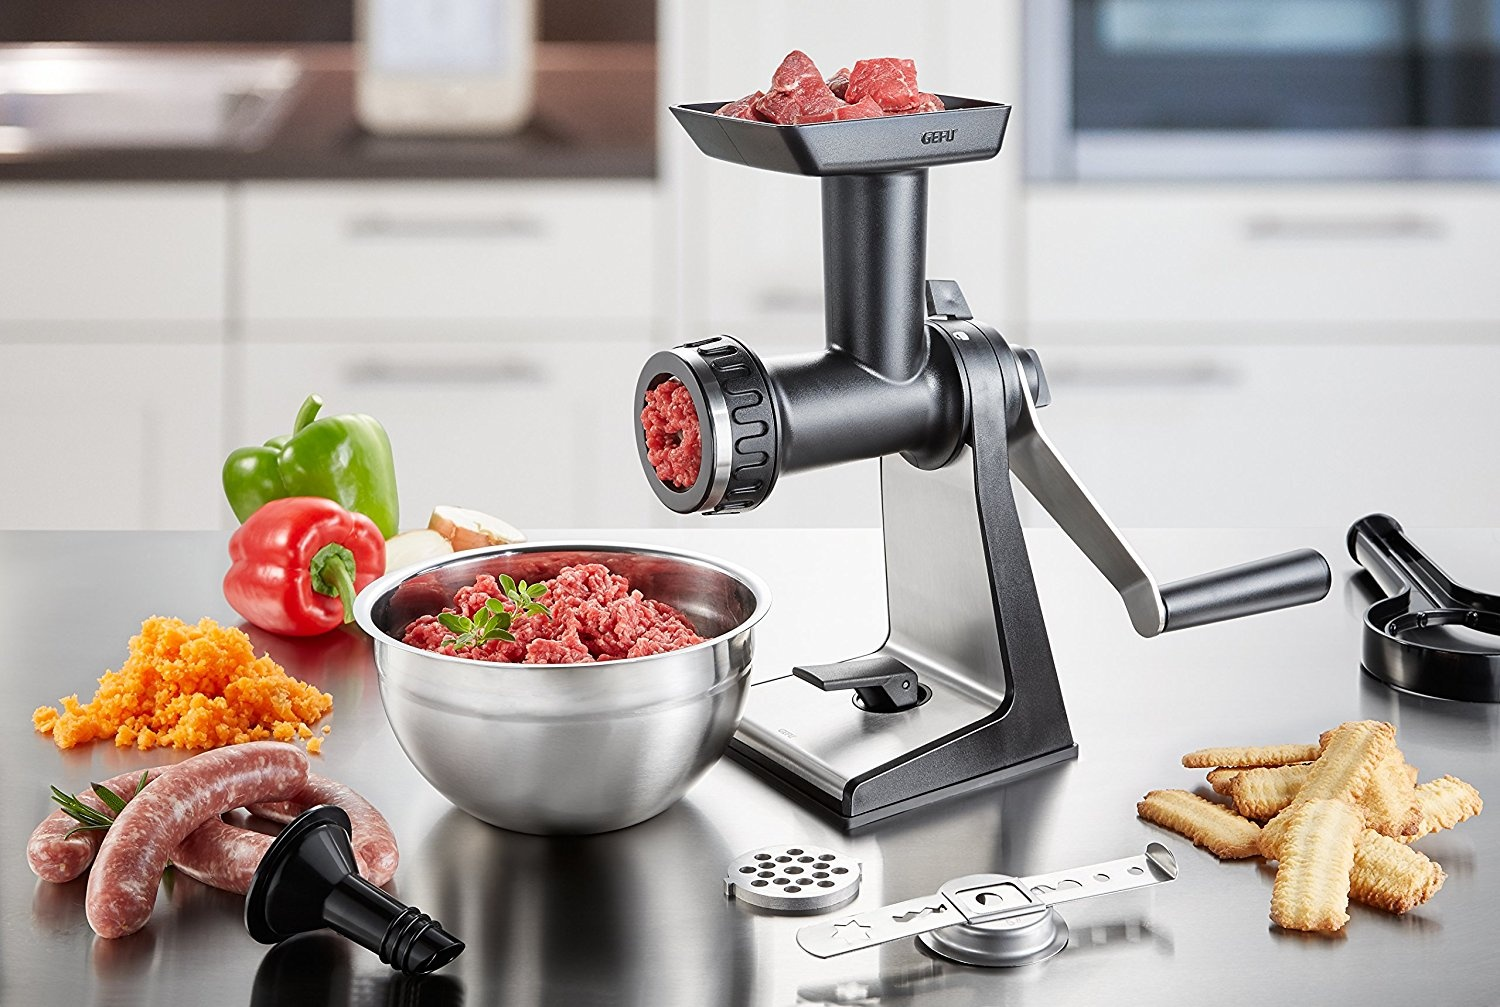 4.5mm GEFU Meat Mincer With Clamp